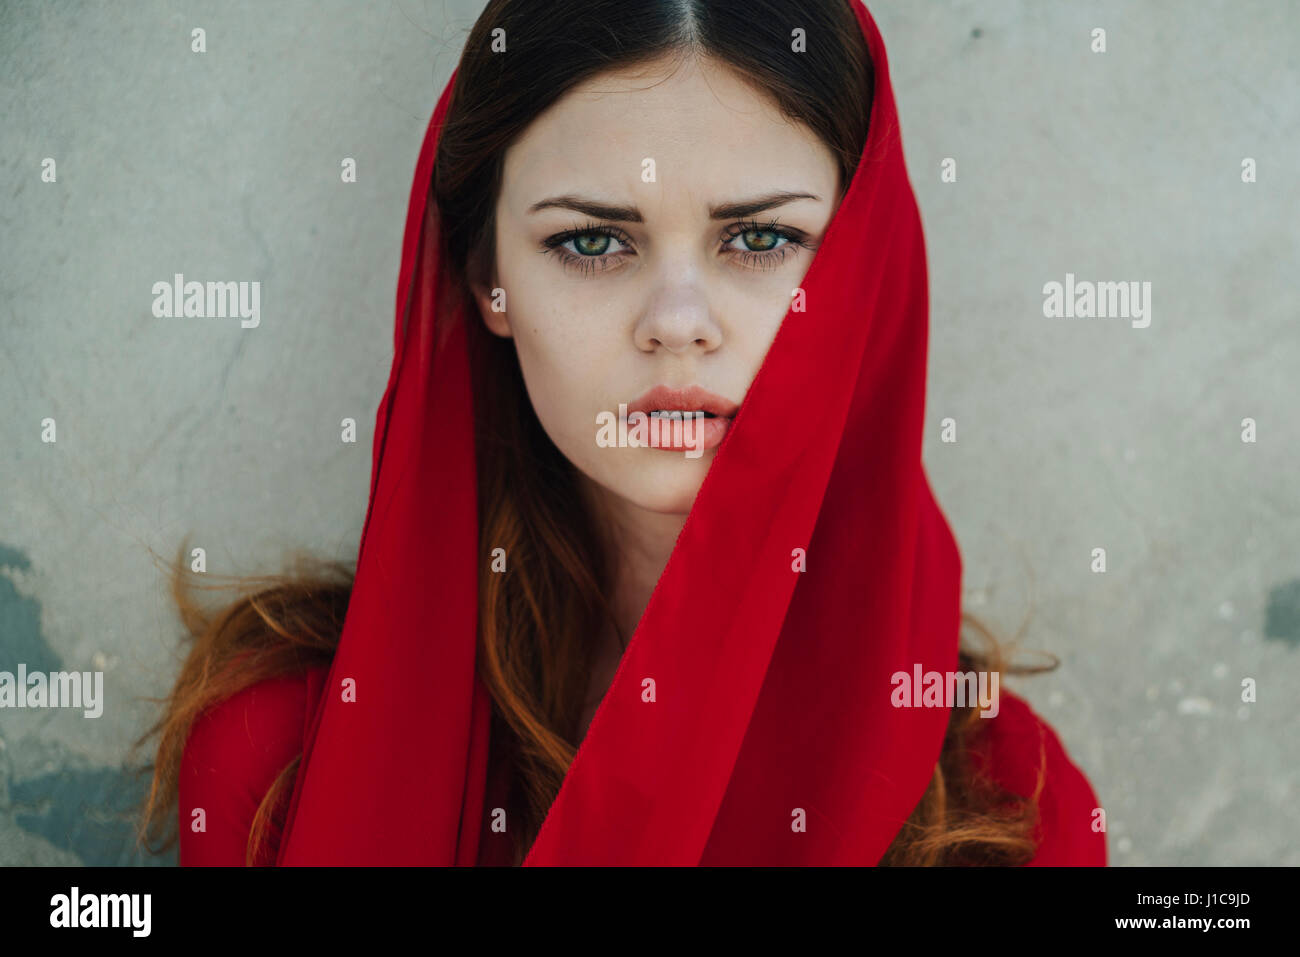 Serious Caucasian woman wearing red headscarf - Stock Image